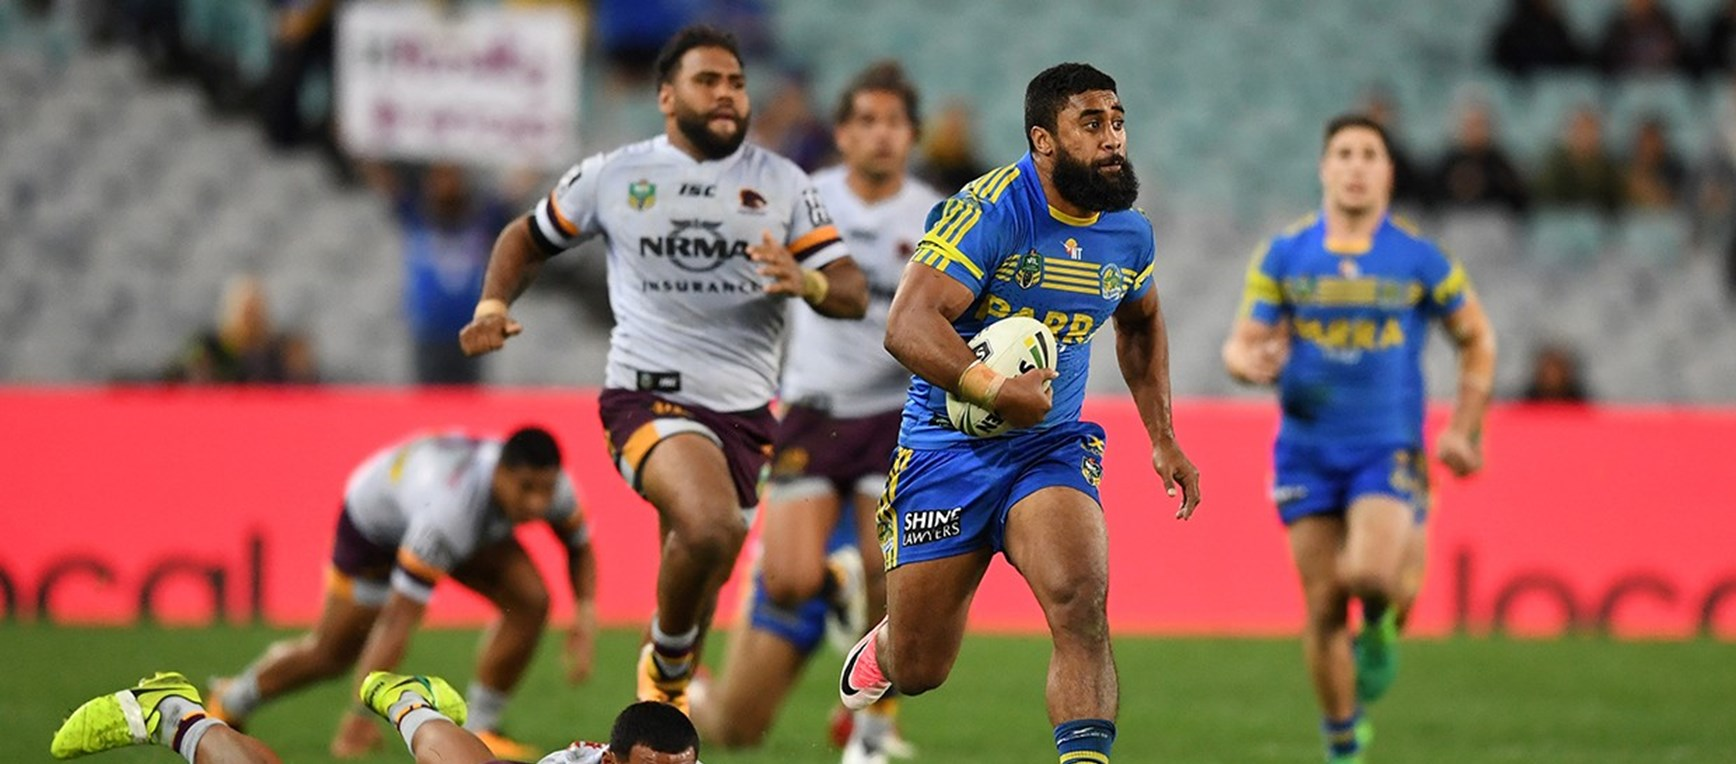 GALLERY | Eels prepare for Wests Tigers